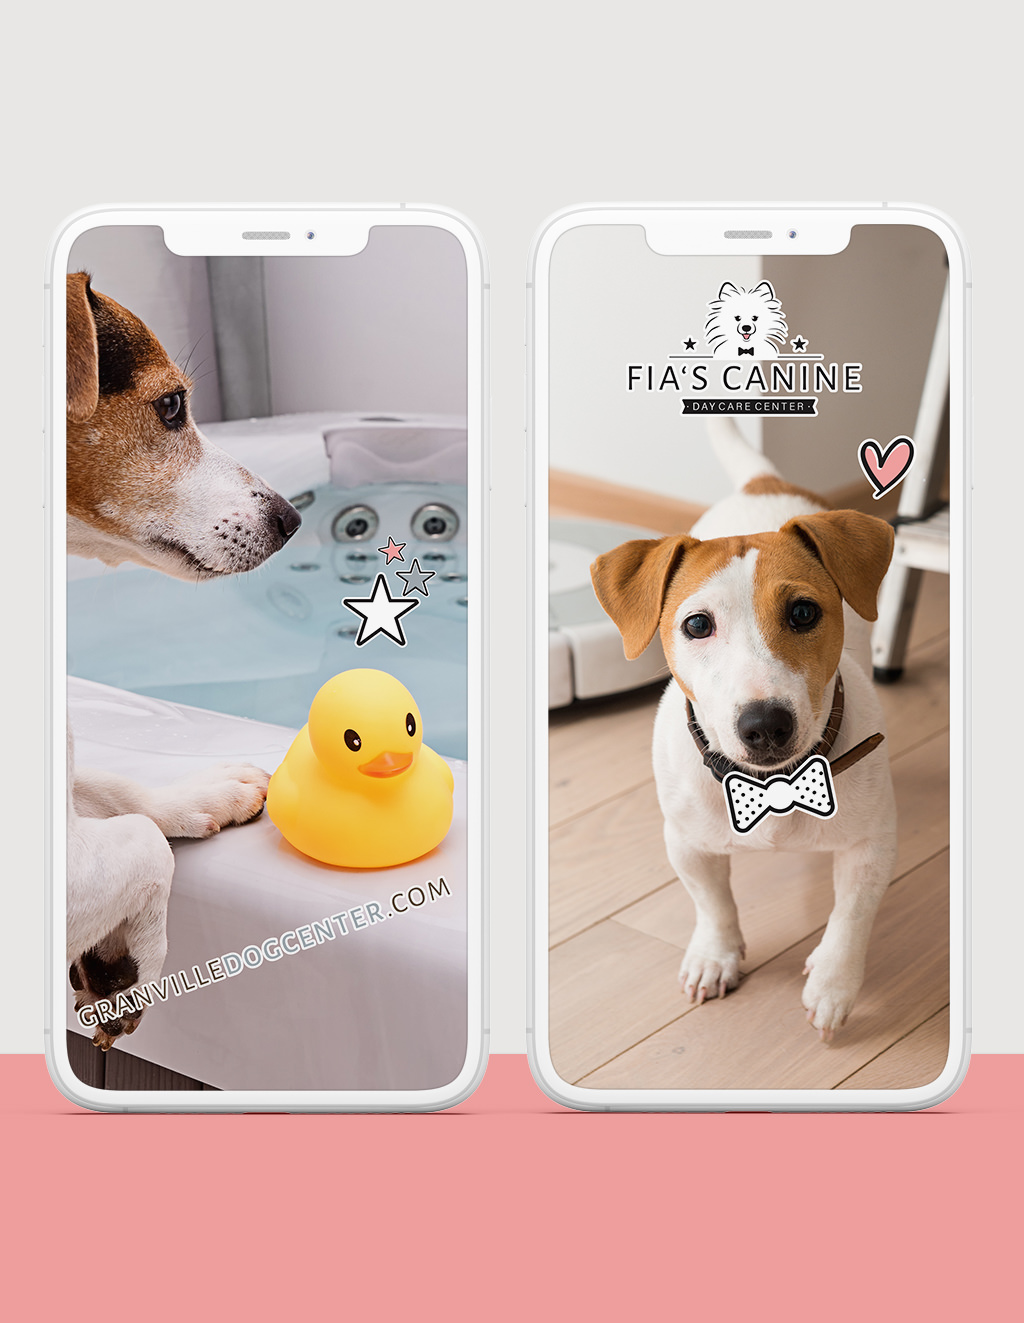 Fia's Canine Daycare Branding Digital Stickers by Sniff Design